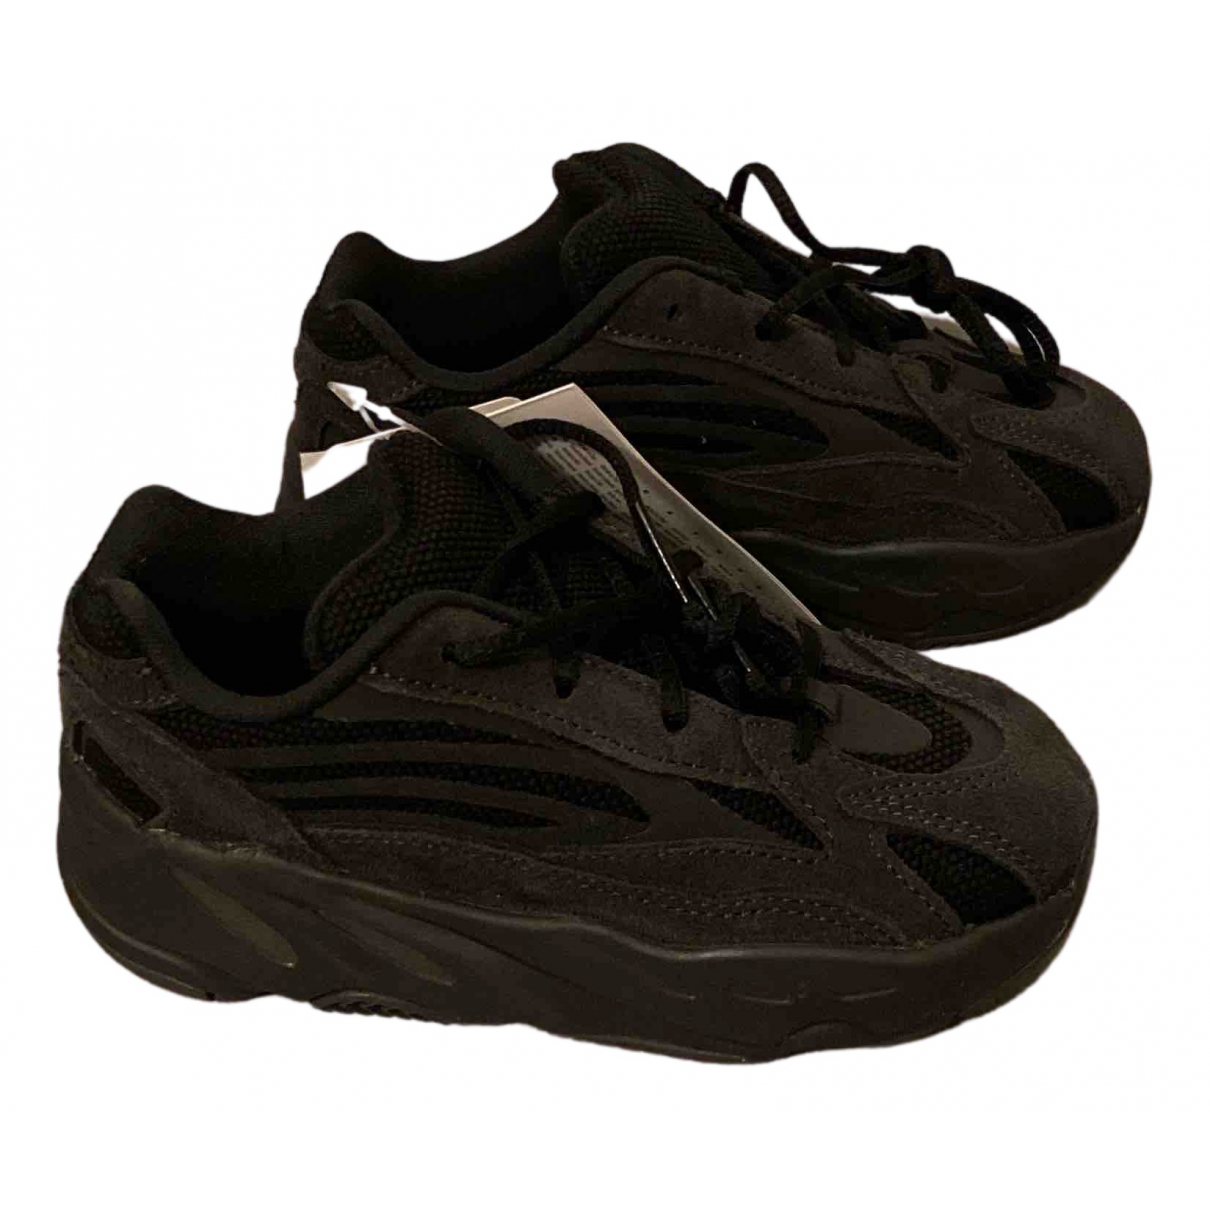 Yeezy X Adidas Boost 700 V1  Black Leather Trainers for Kids 27 FR